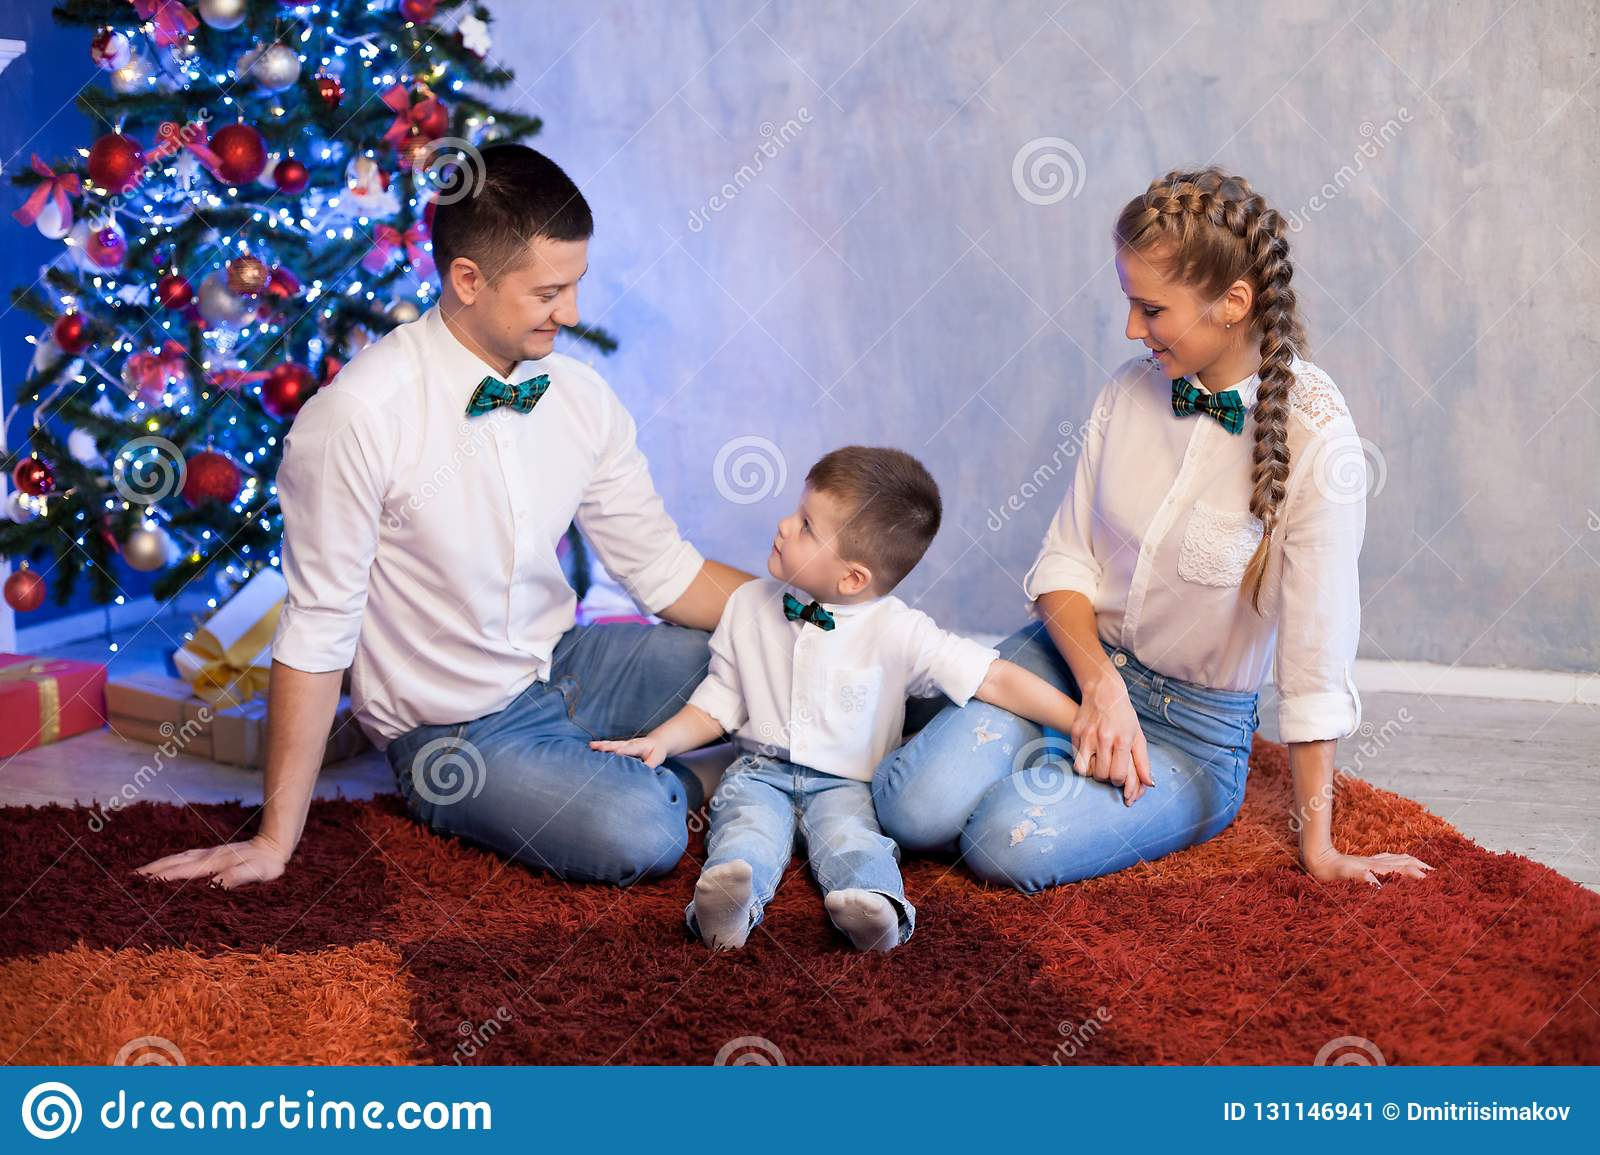 Mom Dad And Son New Year Holidays Christmas Tree Gifts Stock